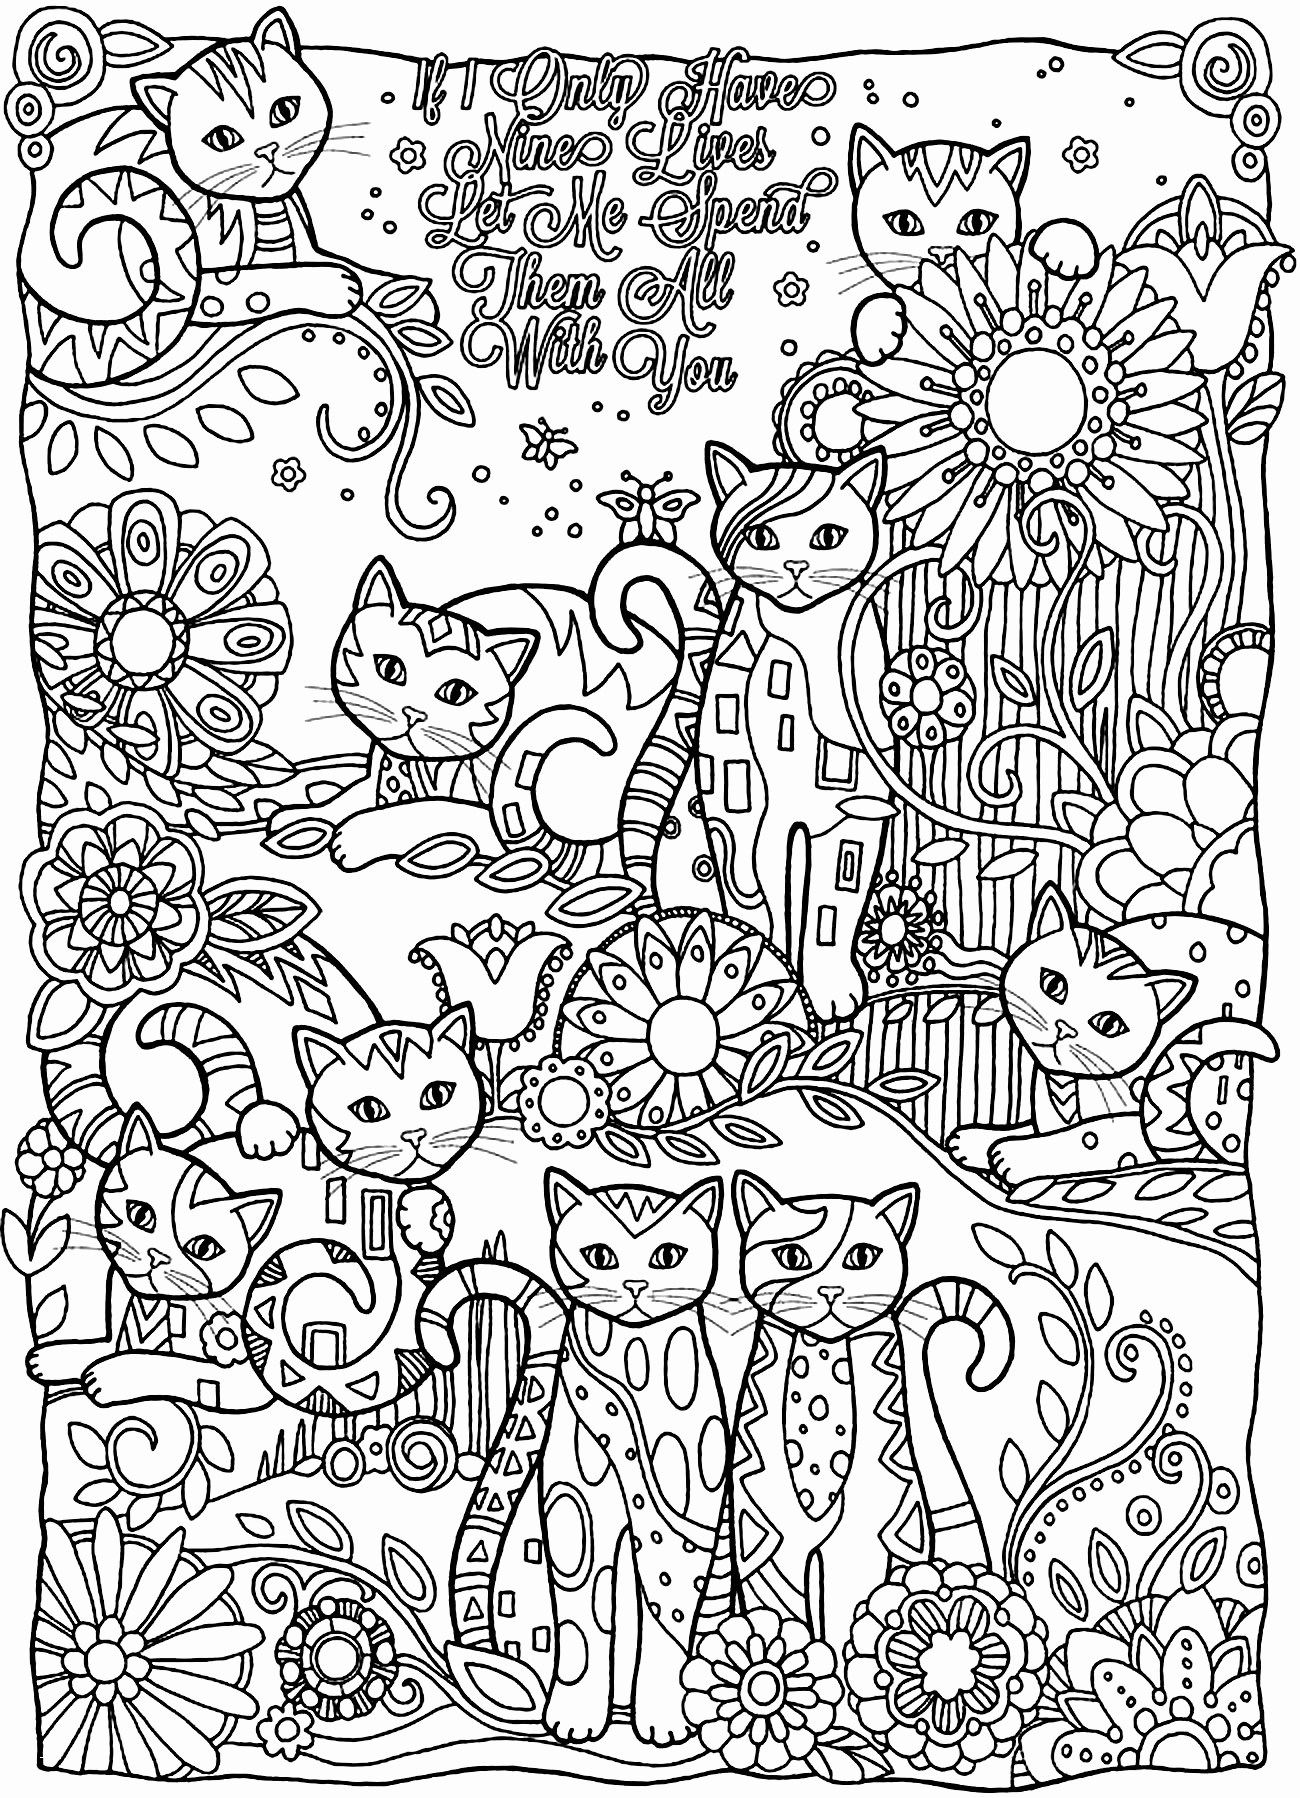 29 Kindness Coloring Pages Printable Download - Coloring ...